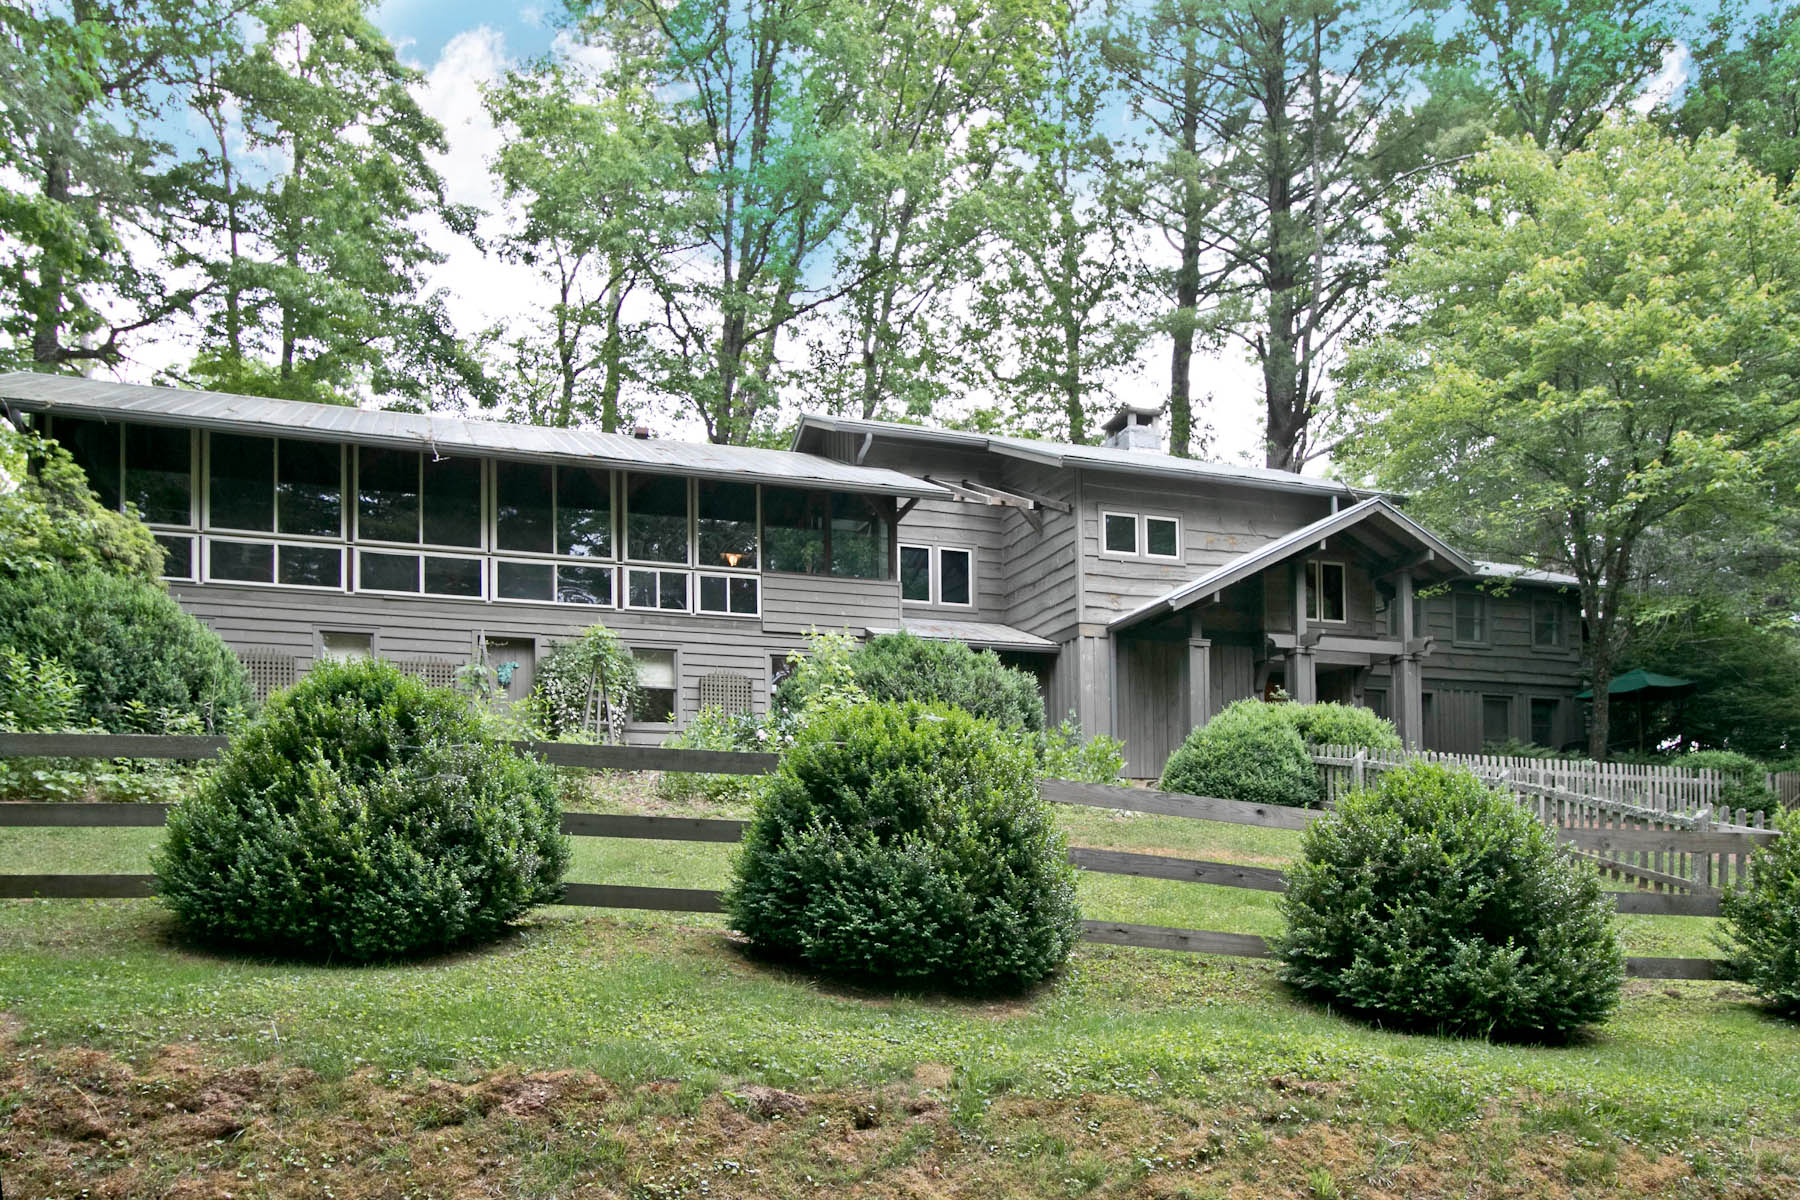 Single Family Home for Sale at Golf Course Views! 1254 Cobb Road Highlands, North Carolina, 28741 United States